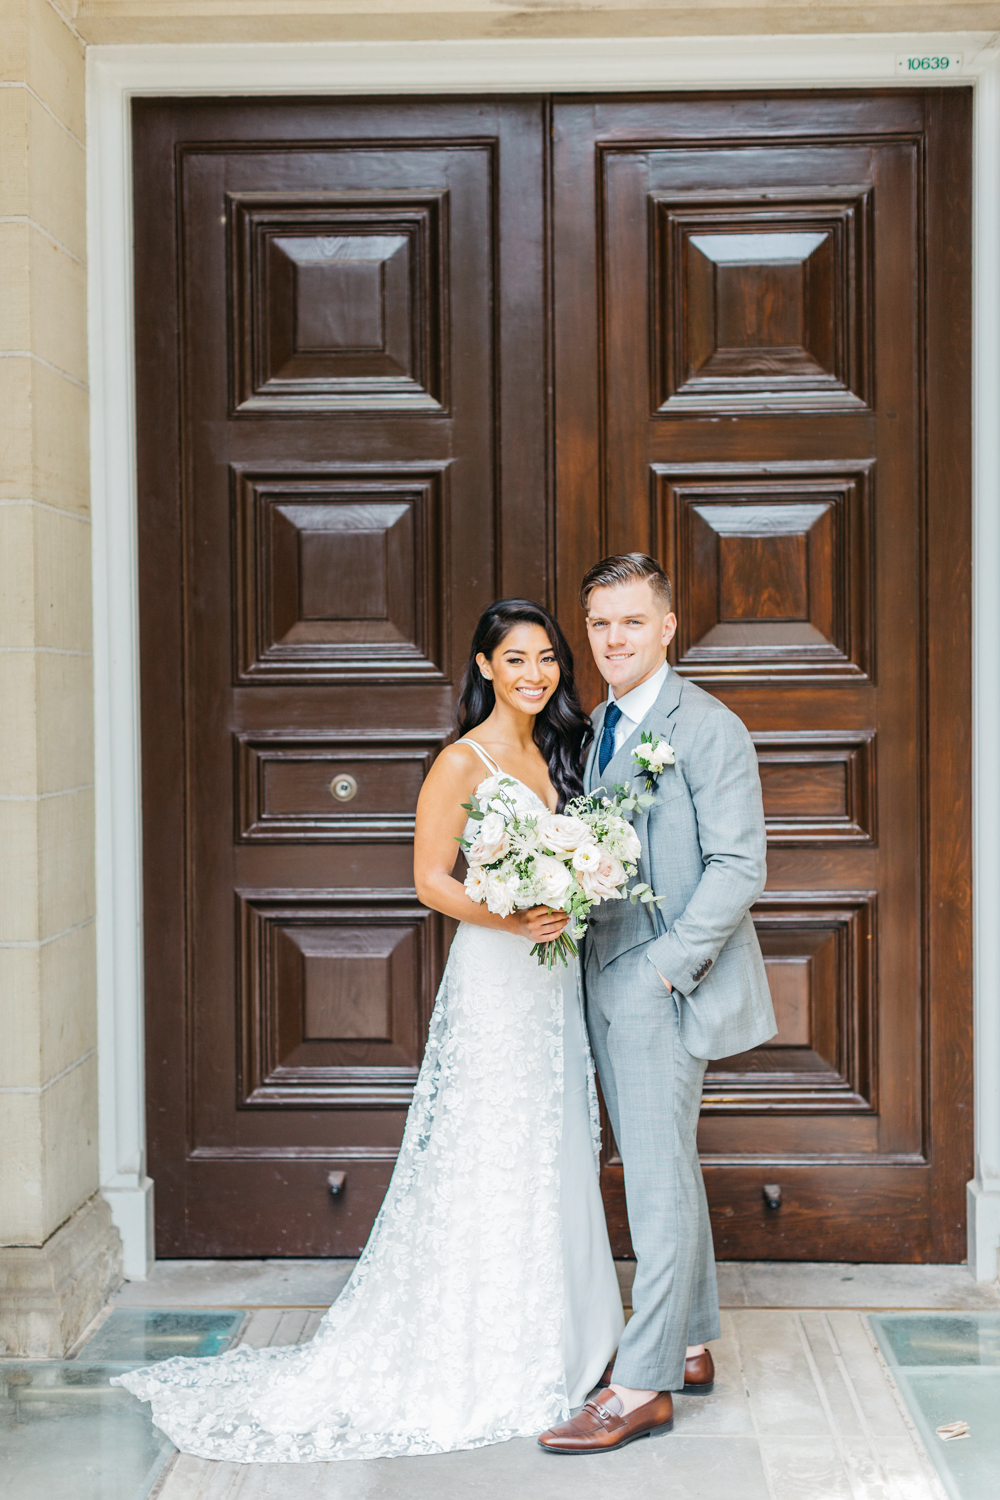 Bride and groom posing in front of doors at Osgoode Hall